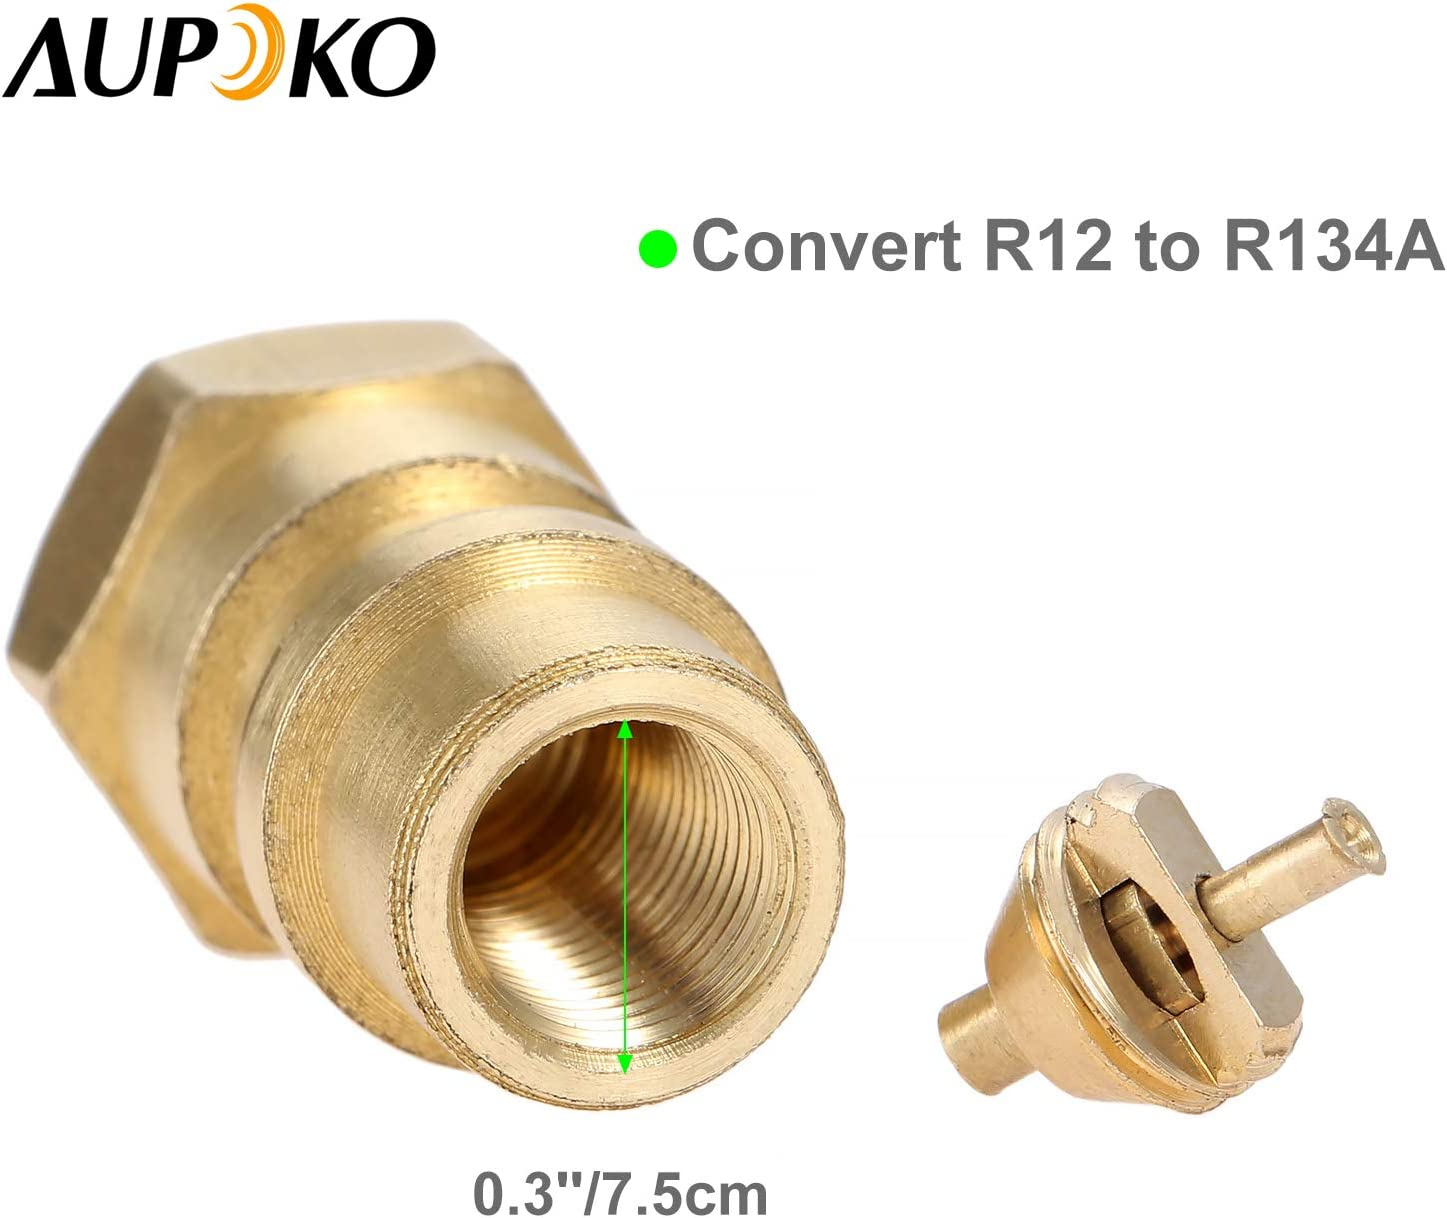 Aupoko A//C Retrofit Valve with Dust Cap with R134A Quick Coupler Interface and Core Valve 1//4 to 8v1 Thread R12 R22 to R134A Fast Quick Conversion